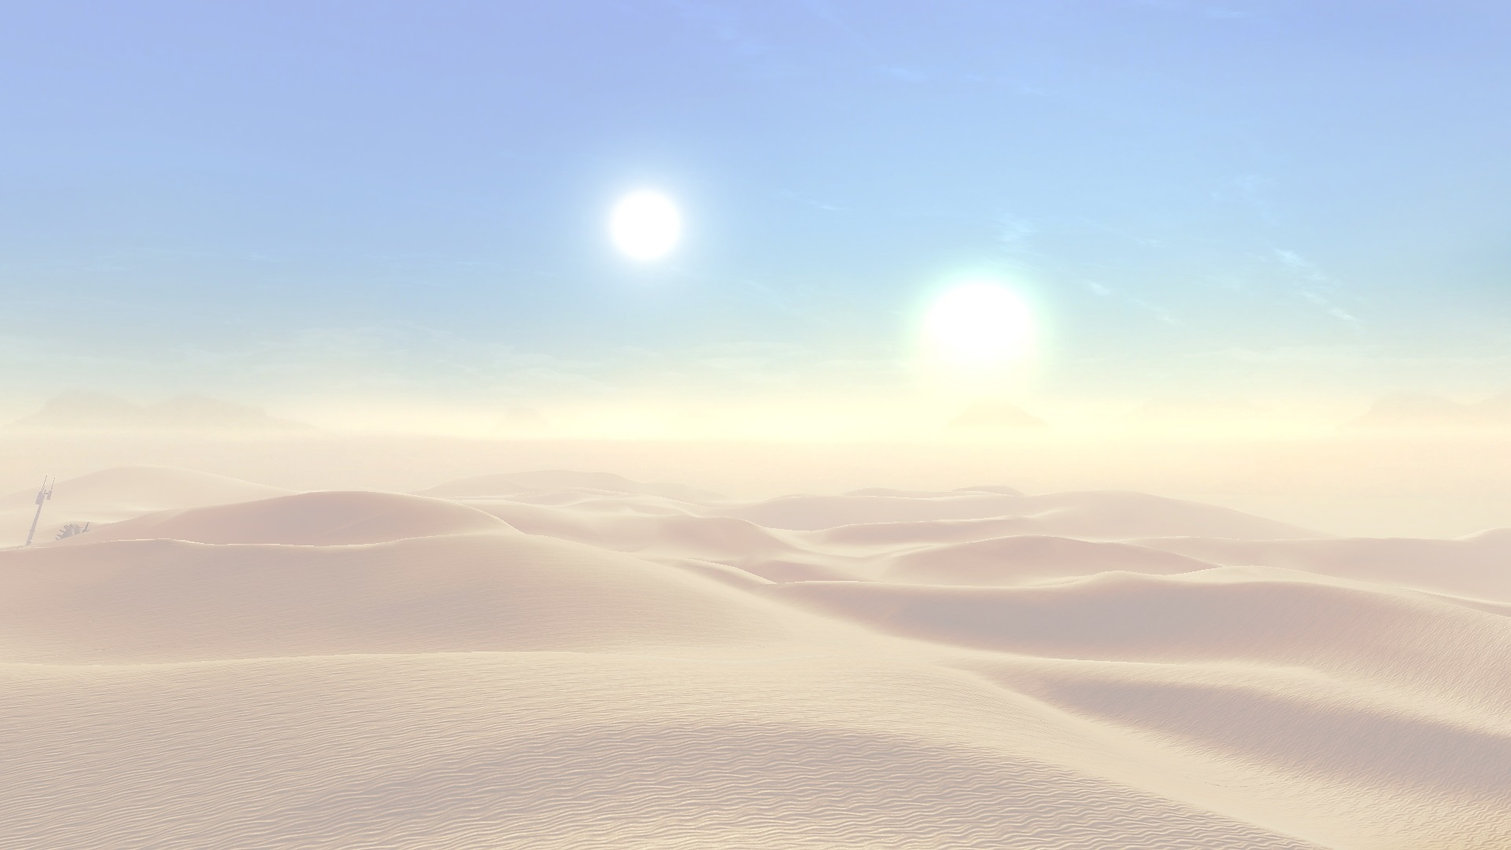 113617-star-wars-tatooine-planet-star-wa